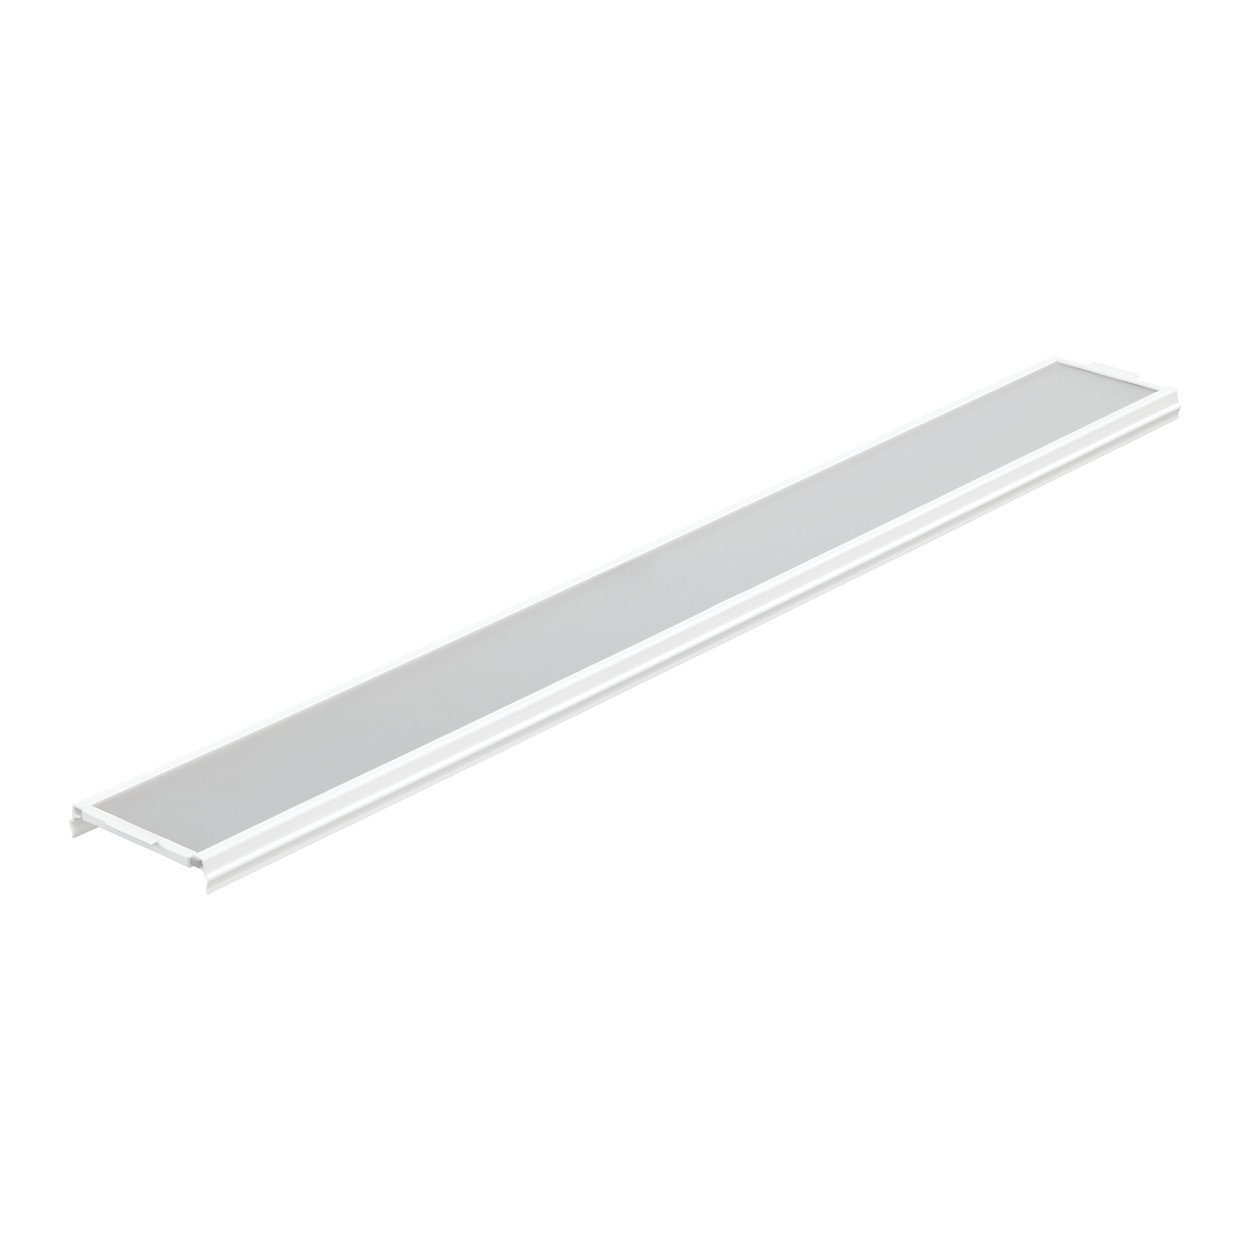 IntelliHue SkyRibbon Wall Washing Powercore - Recessed linear interior LED wall washing luminaire with intelligent white and color light